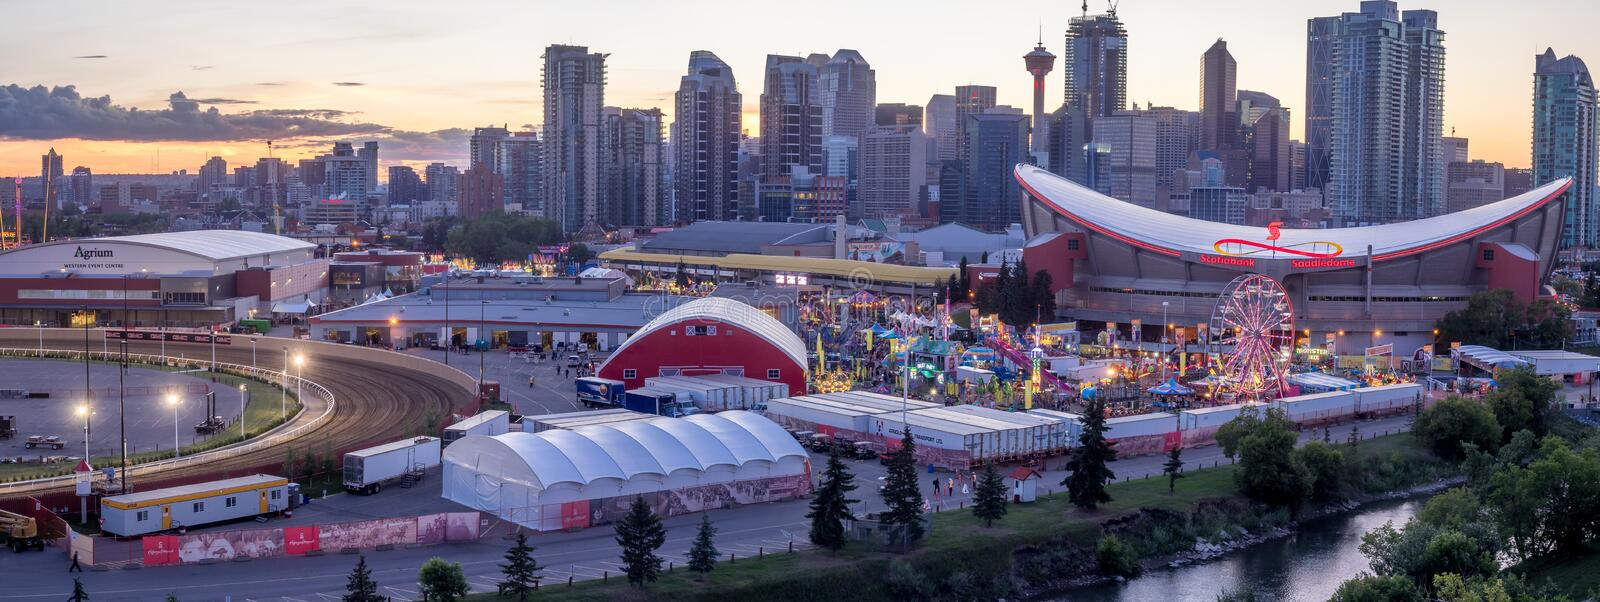 Panoramic view of the the Calgary Stampede at sunset stock photo